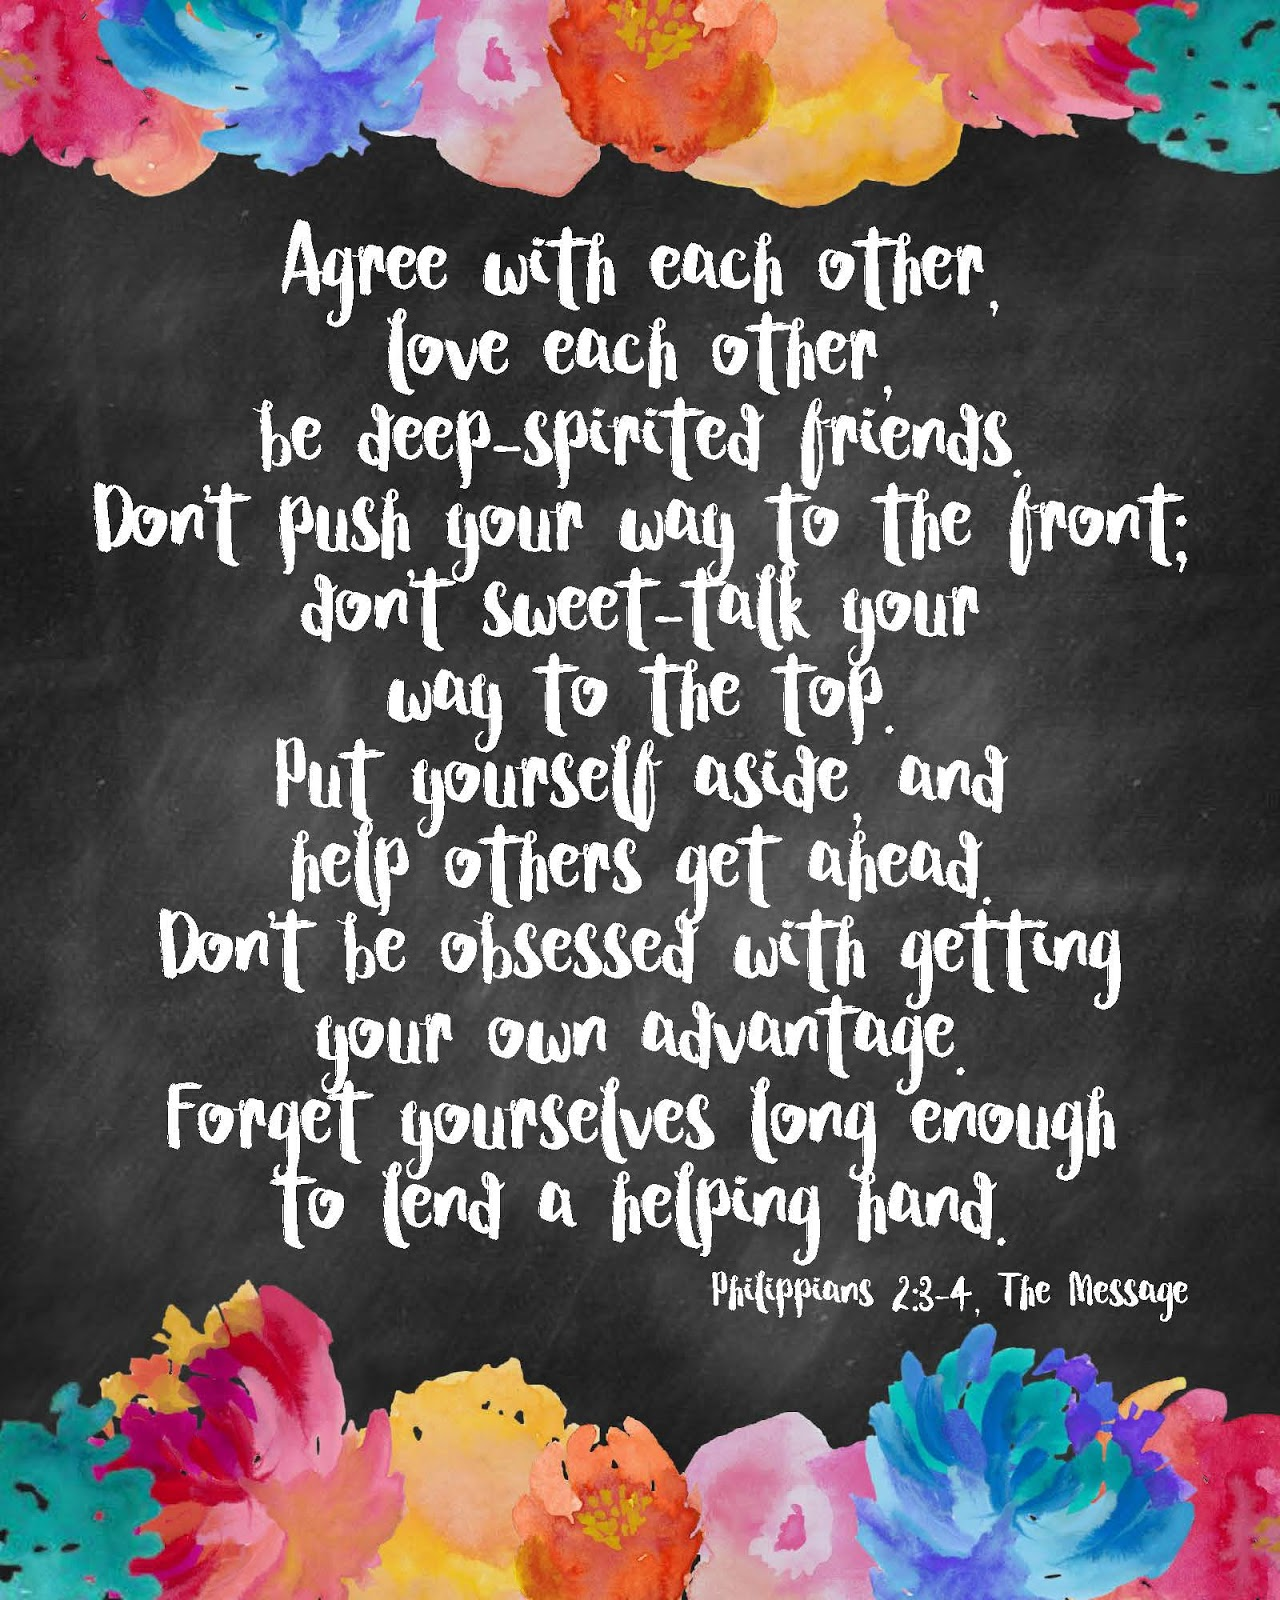 Sweet Blessings Wise Advice On A Monday Morning